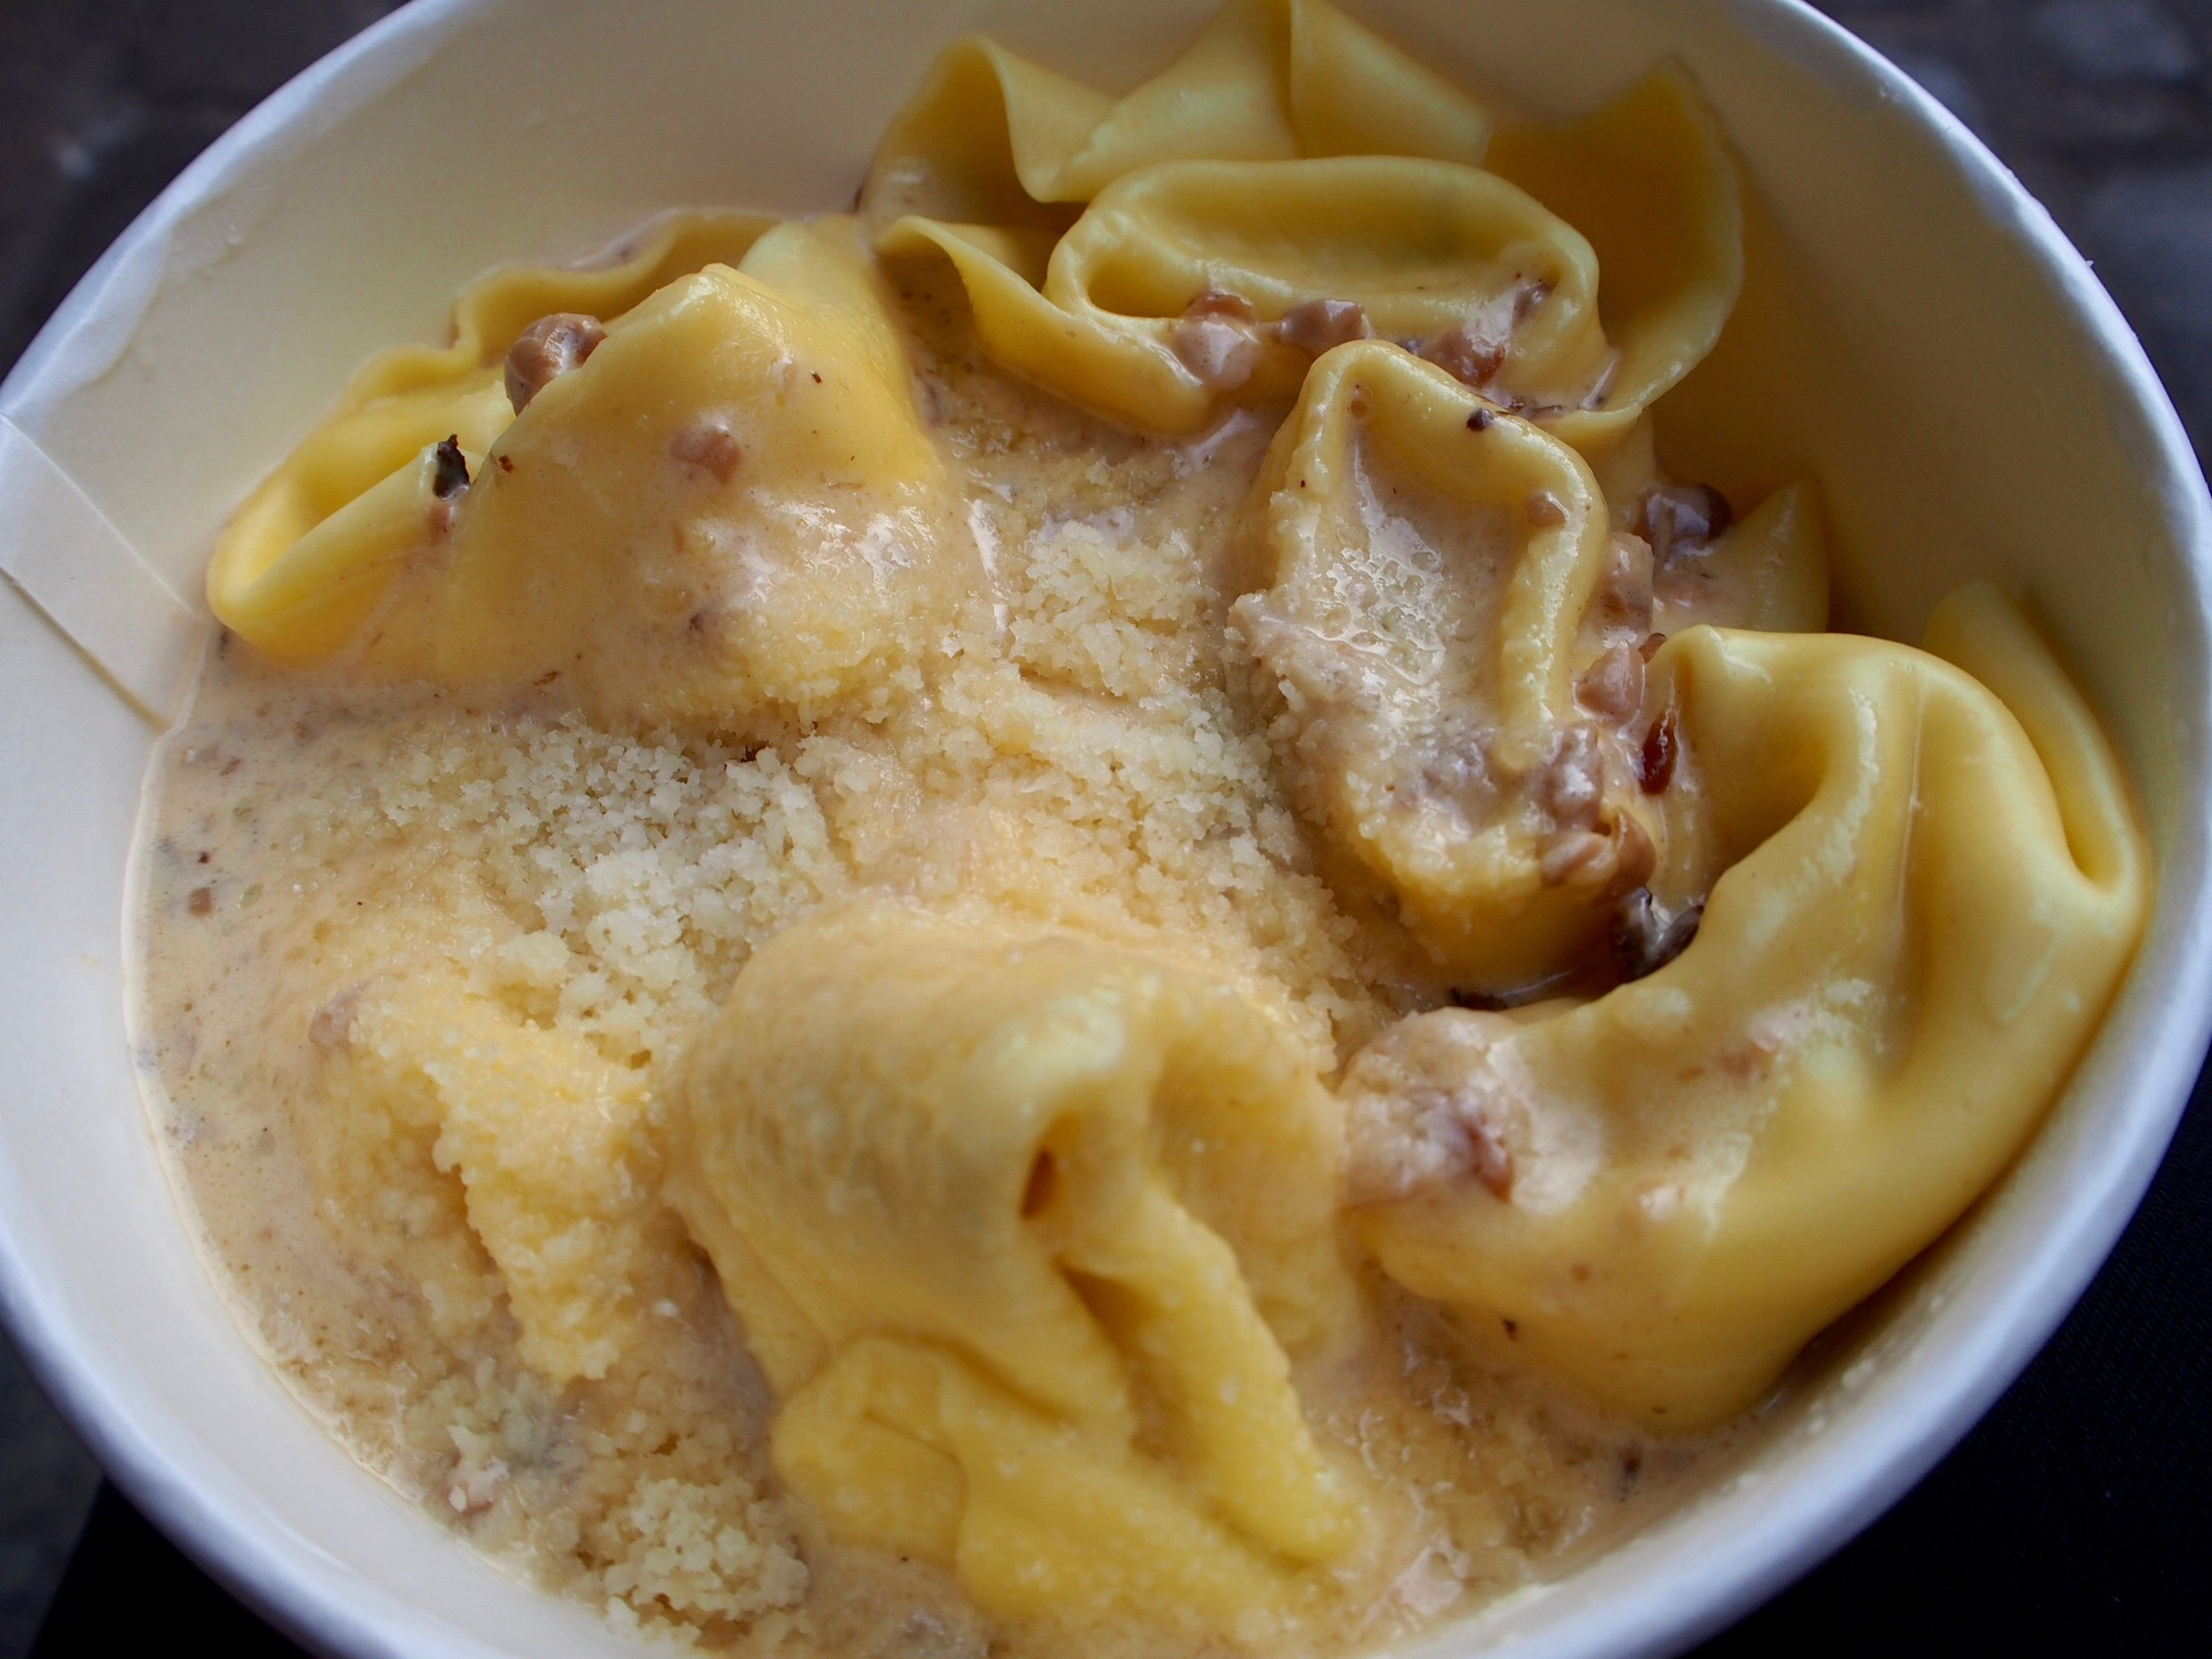 Nothing says autumn quite like truffles. Tortellini with white truffles and a mushroom sauce